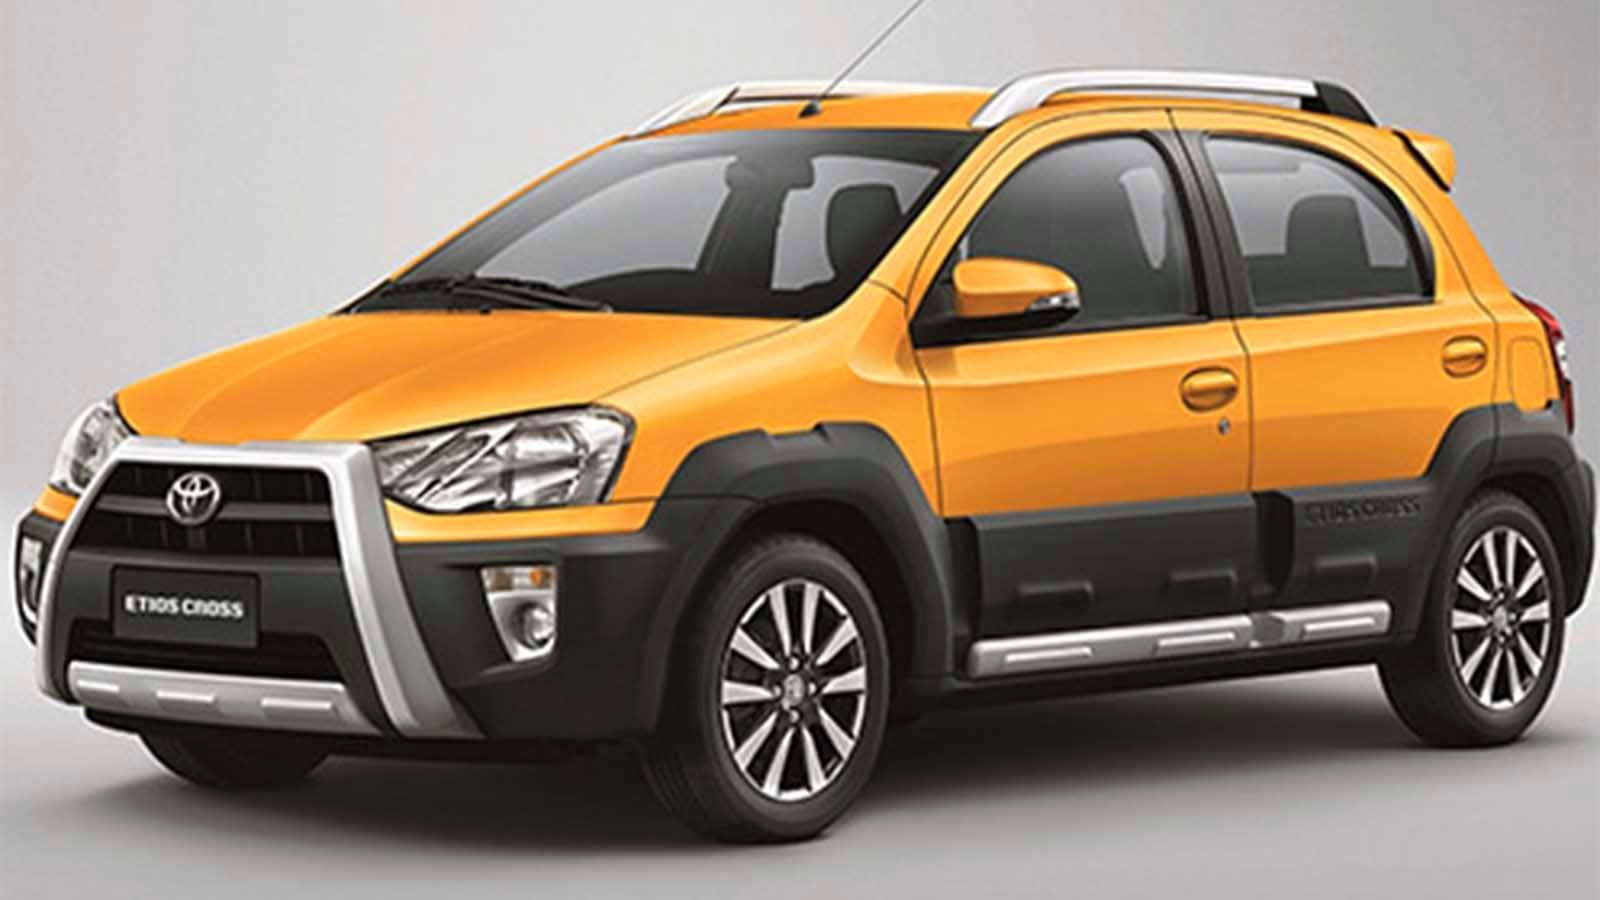 Toyota Etios Cross India Price And Specs Techgangs